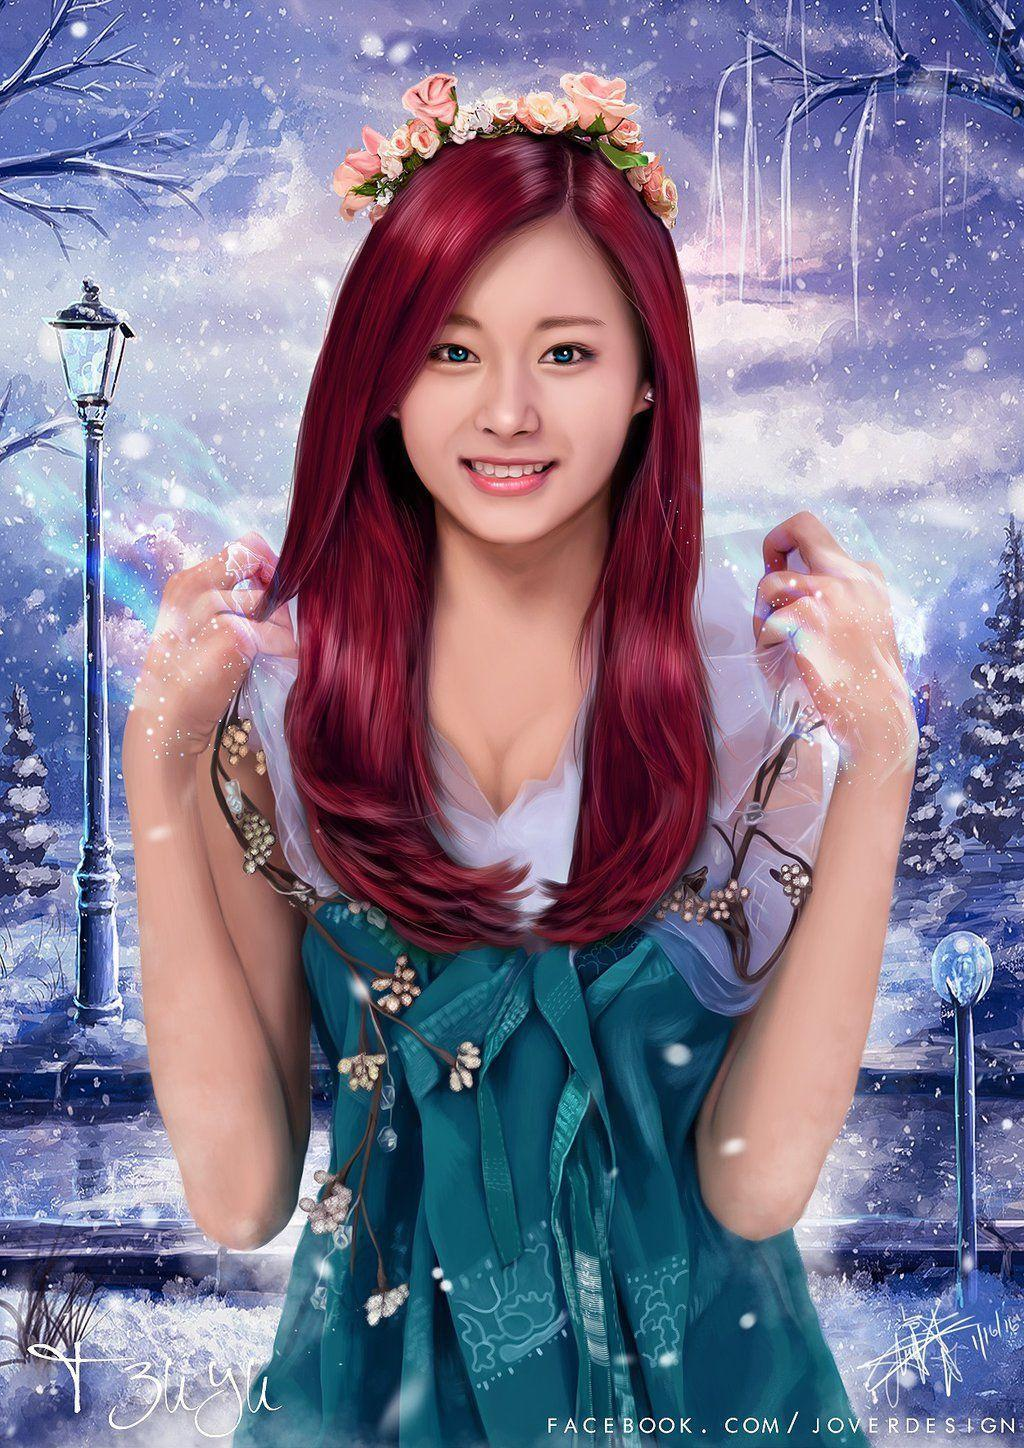 Twice Tzuyu by Jover